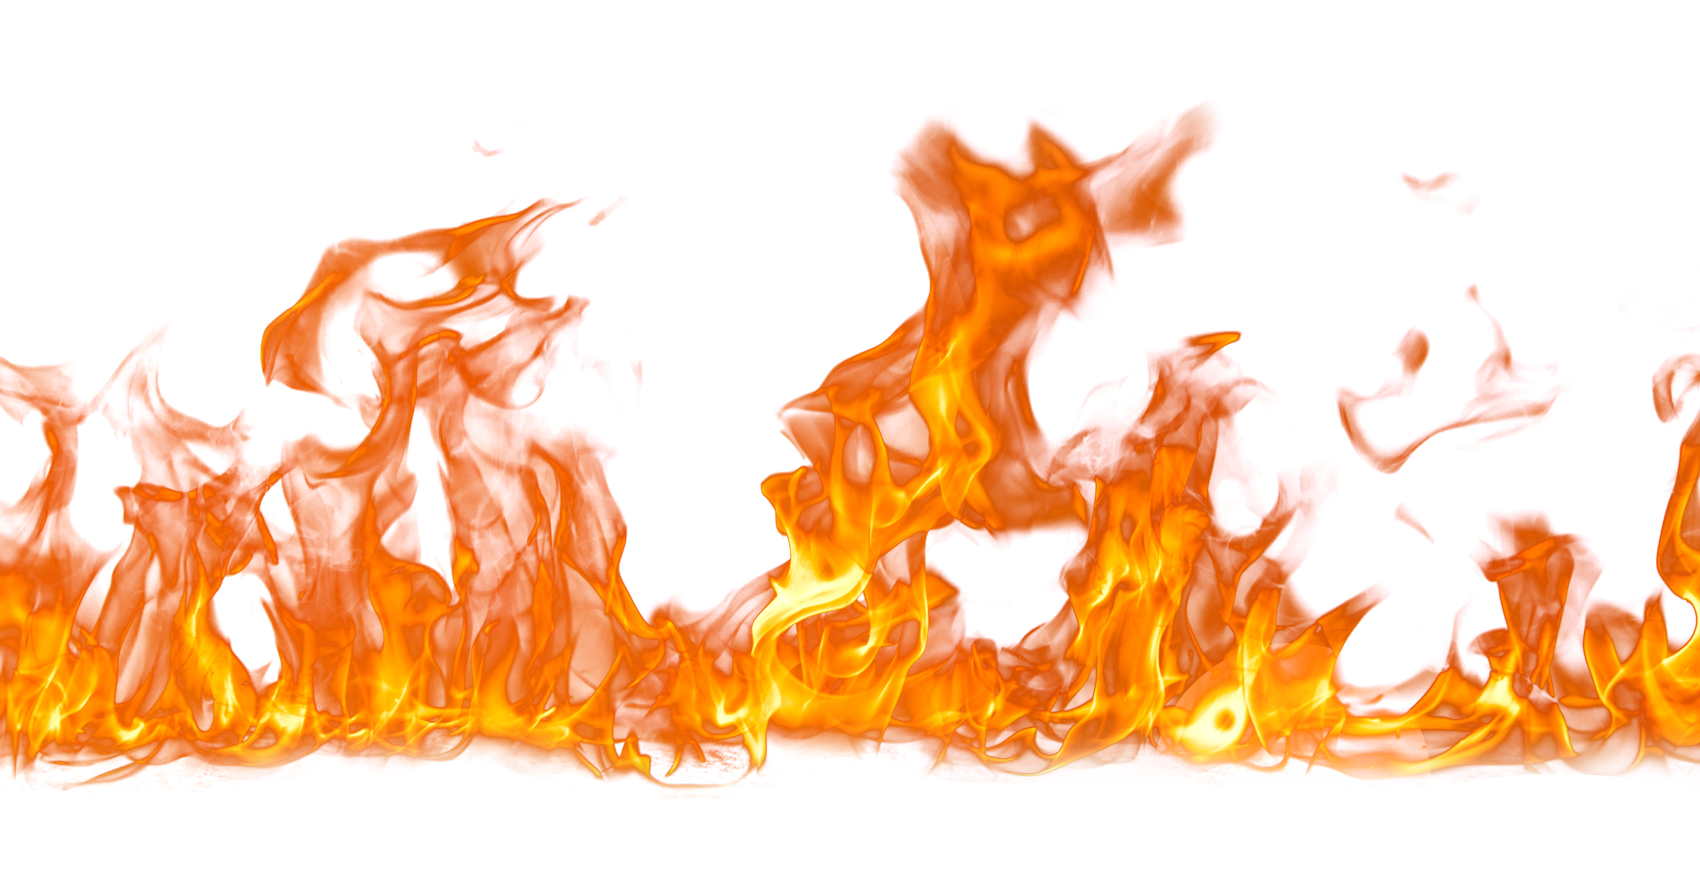 Fire transparent images all. Flame border png